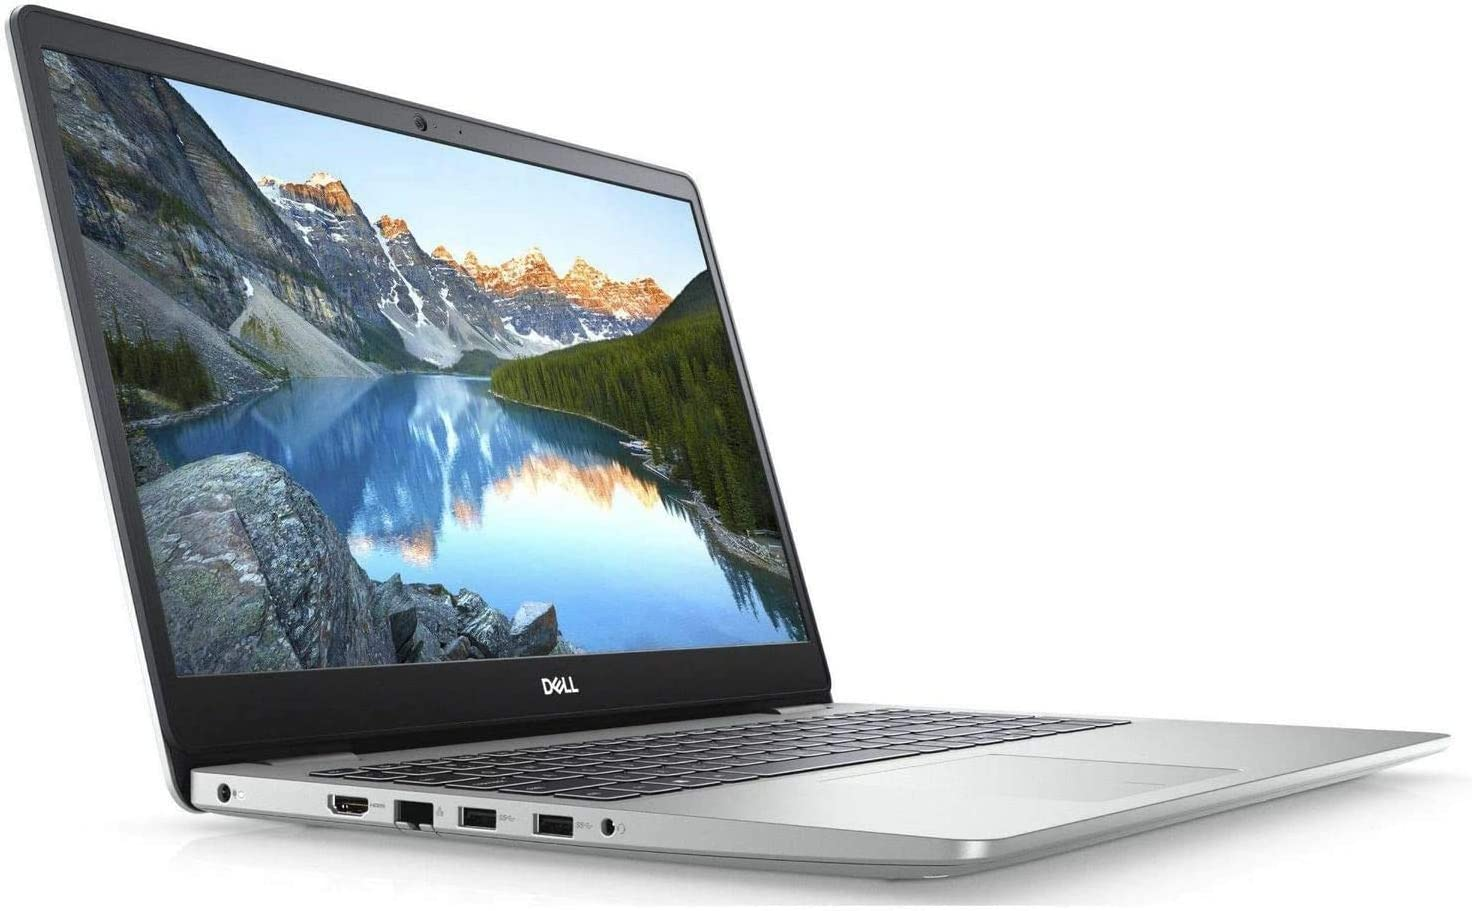 "2020 Dell Inspiron 15 5000 Series Laptop, 15.6"" Full HD Screen, 10th Gen Intel Core i3-1005G1 Processor, 8GB DDR4 RAM, 256GB PCIe NVMe M.2 SSD, HDMI, Wi-Fi, Bluetooth, Win10 Home, Silver (Renewed)"